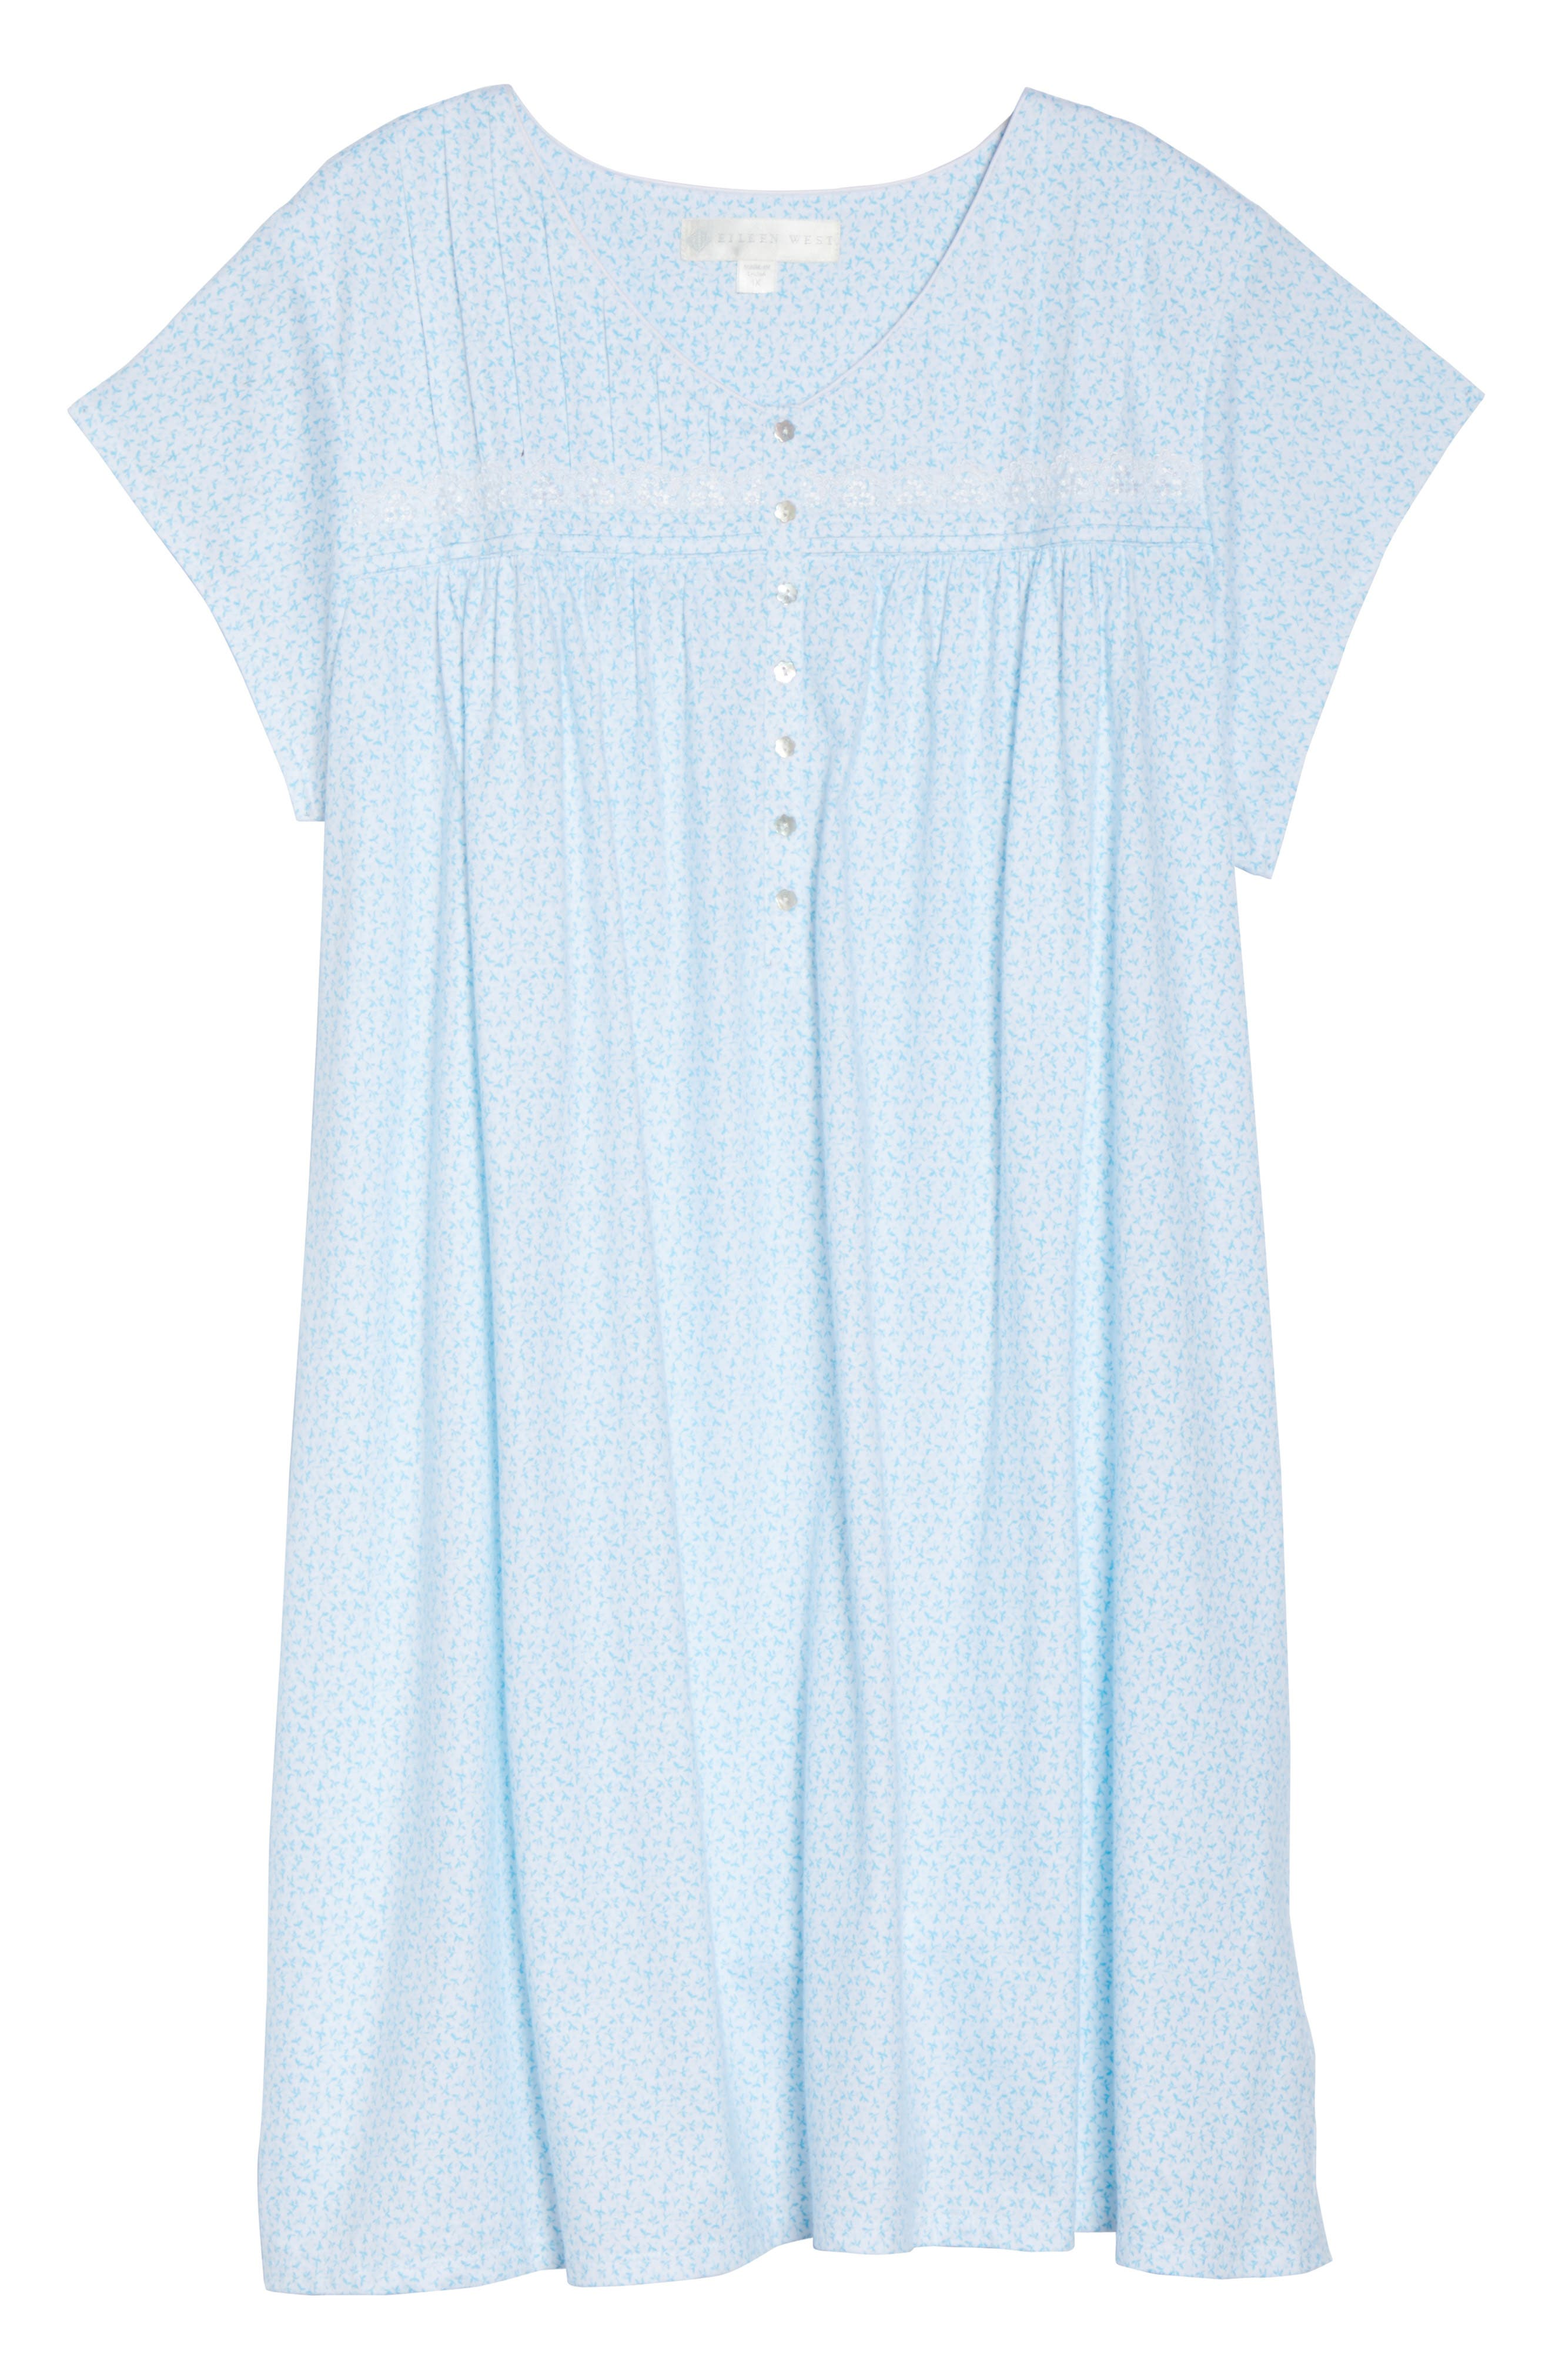 Short Nightgown,                             Alternate thumbnail 6, color,                             100